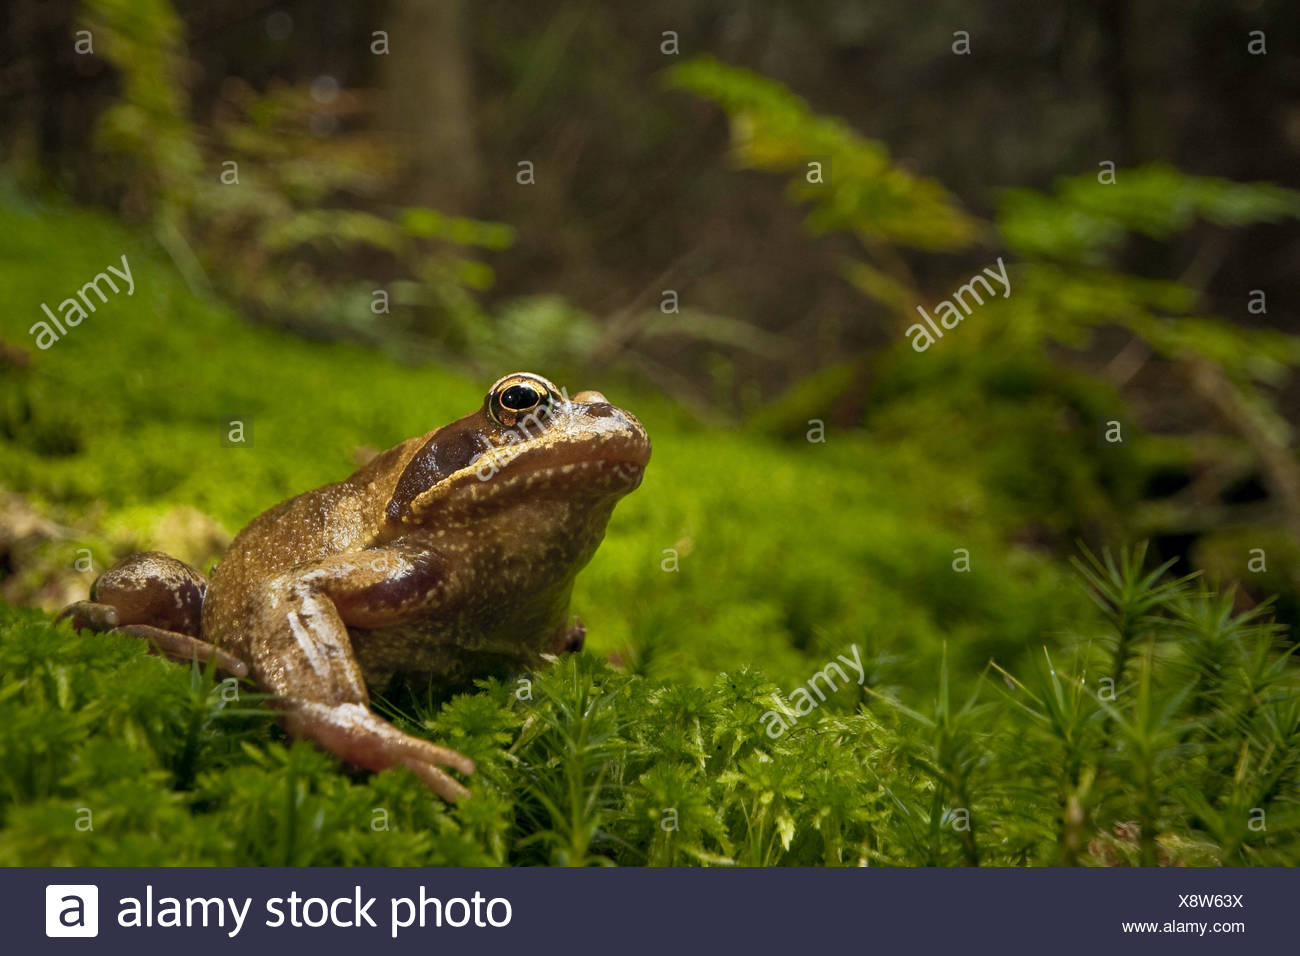 common frog, grass frog (Rana temporaria), sitting on moss at a clearing, Germany, Rhineland-Palatinate - Stock Image